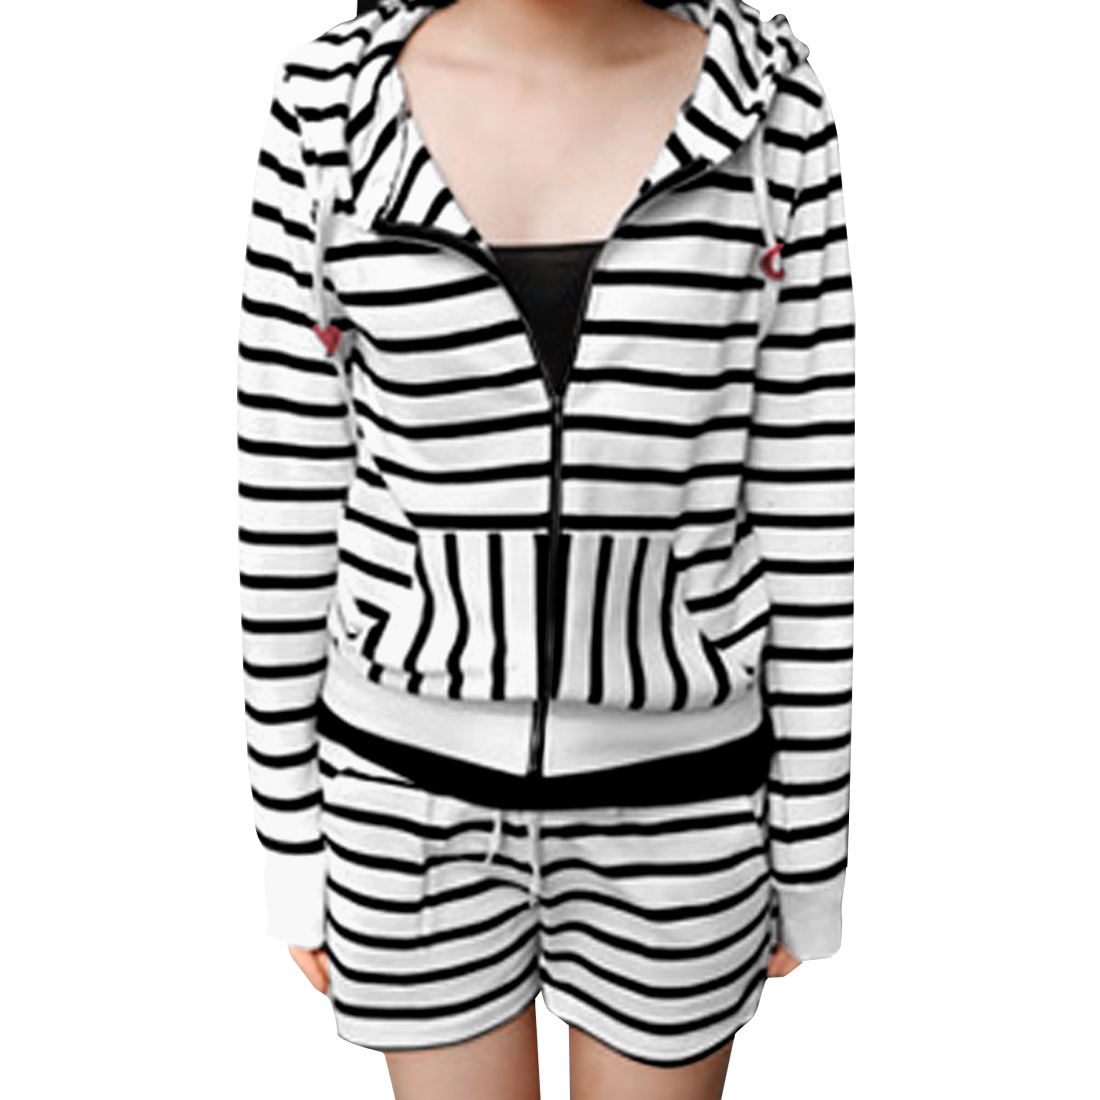 Lady Long Sleeves Stripes Hoodie w Drawstring Waist Shorts Sets White XS